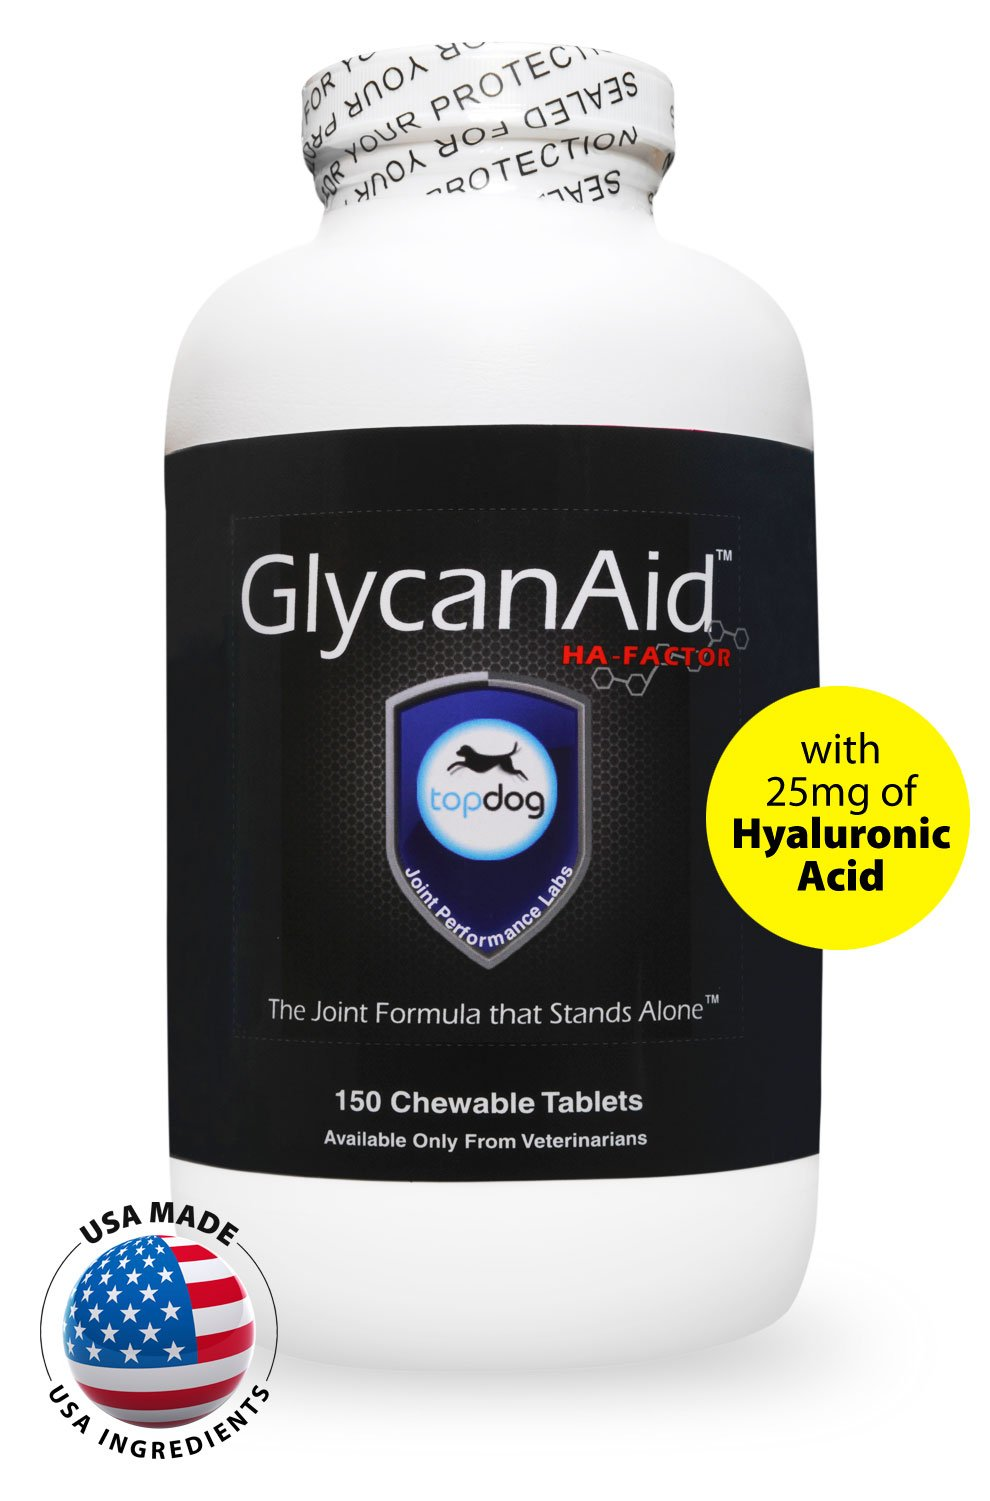 TopDog Health - GlycanAid-HA Advanced Joint Supplement for Dogs (150 Chewable Tablets) - Made in USA with USA Ingredients - Contains Glucosamine HCL, Chondroitin Sulfate, Hyaluronic Acid, MSM, Cetyl-M by TopDog Health